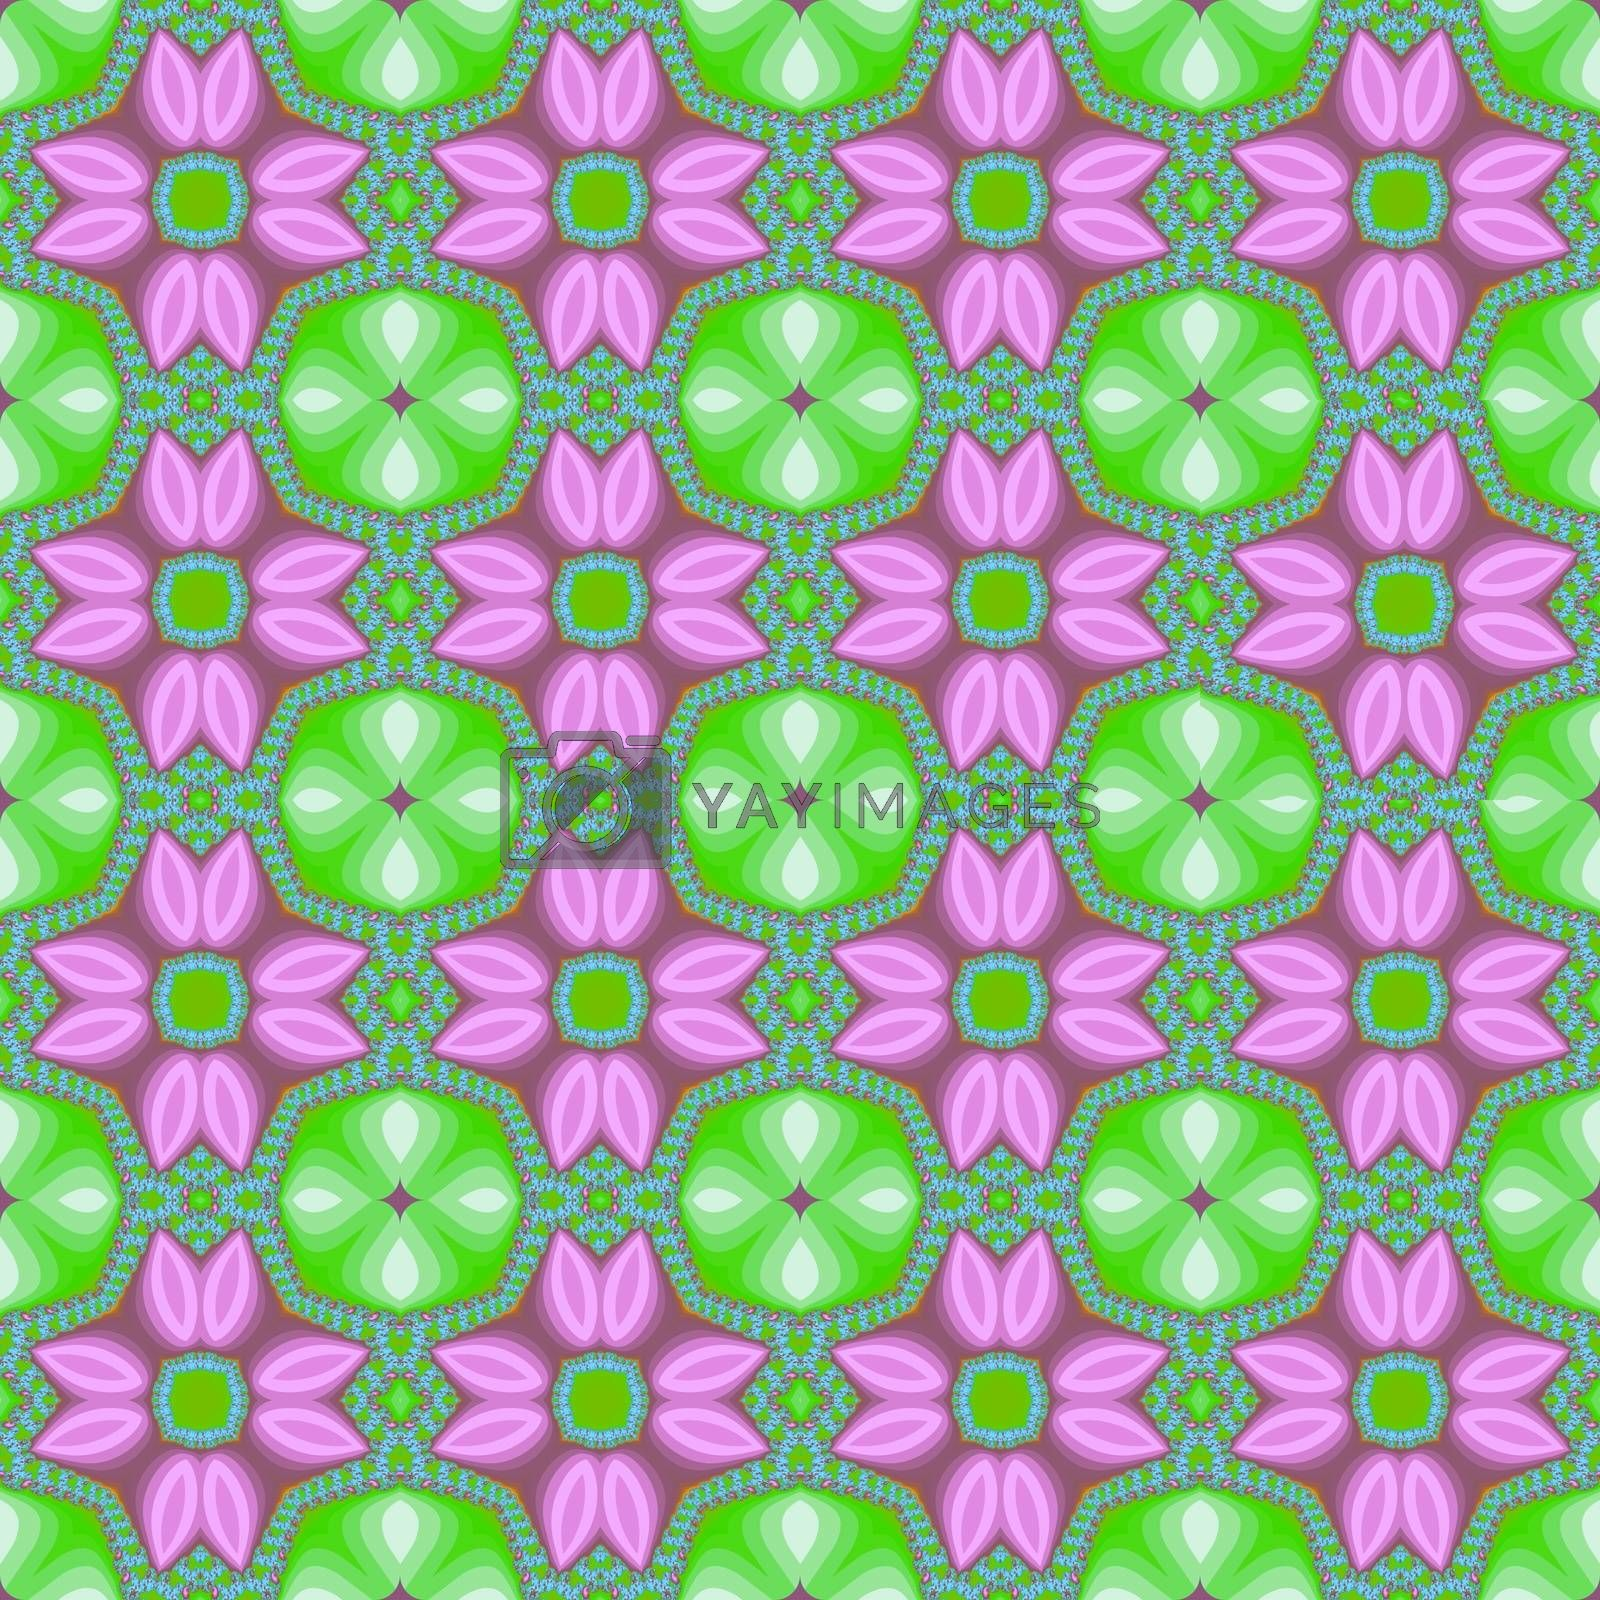 Royalty free image of Seamless fractal pattern with decorative flowers by Astronira